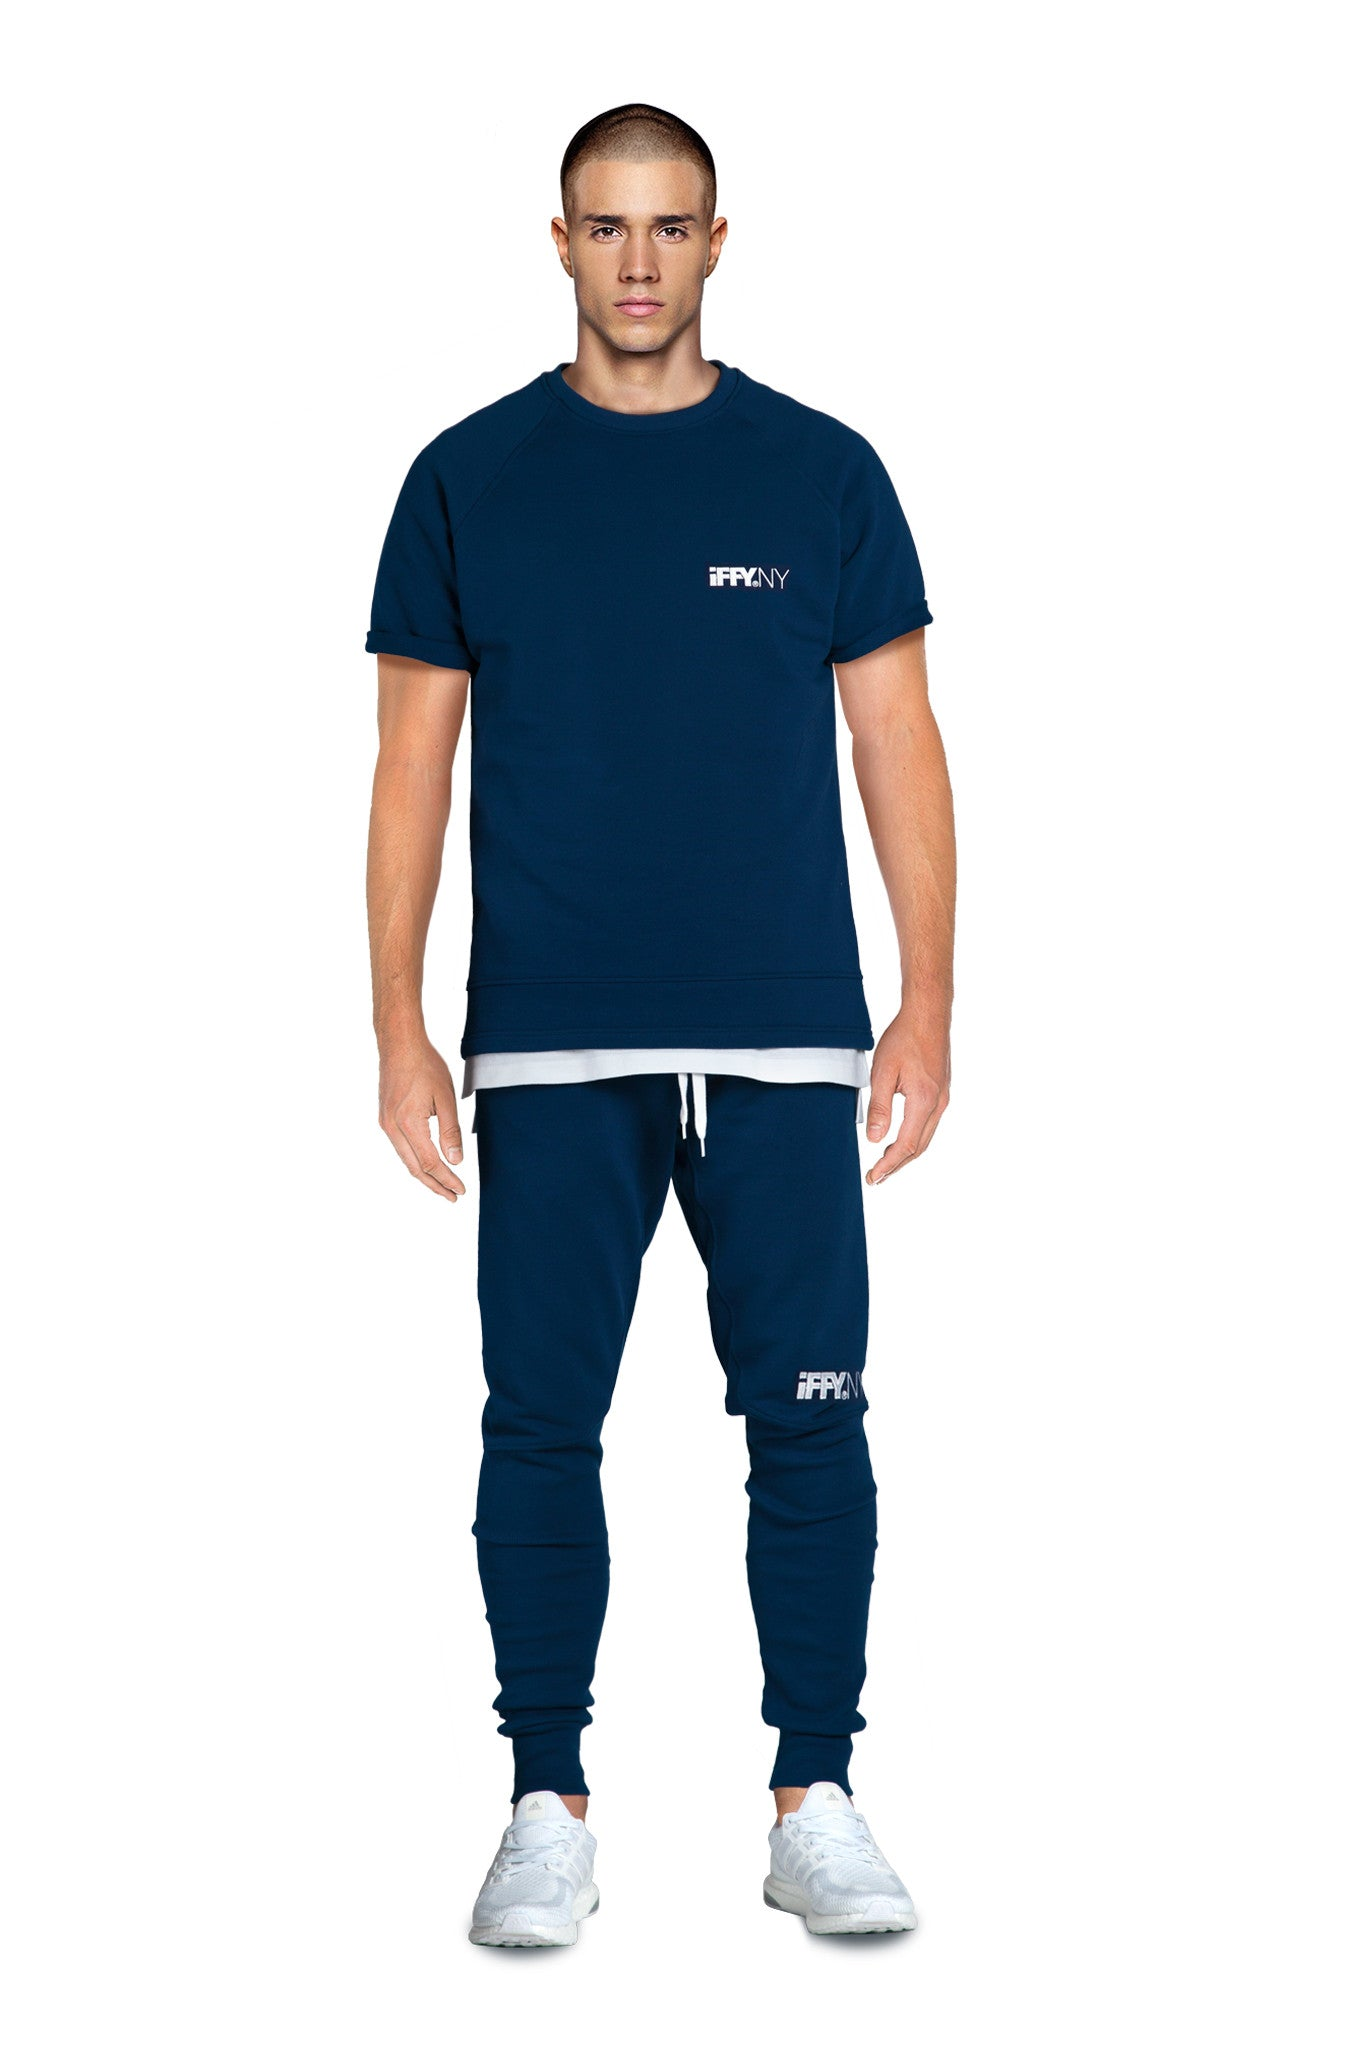 IFFY NY Giles T-shirt in marine blue